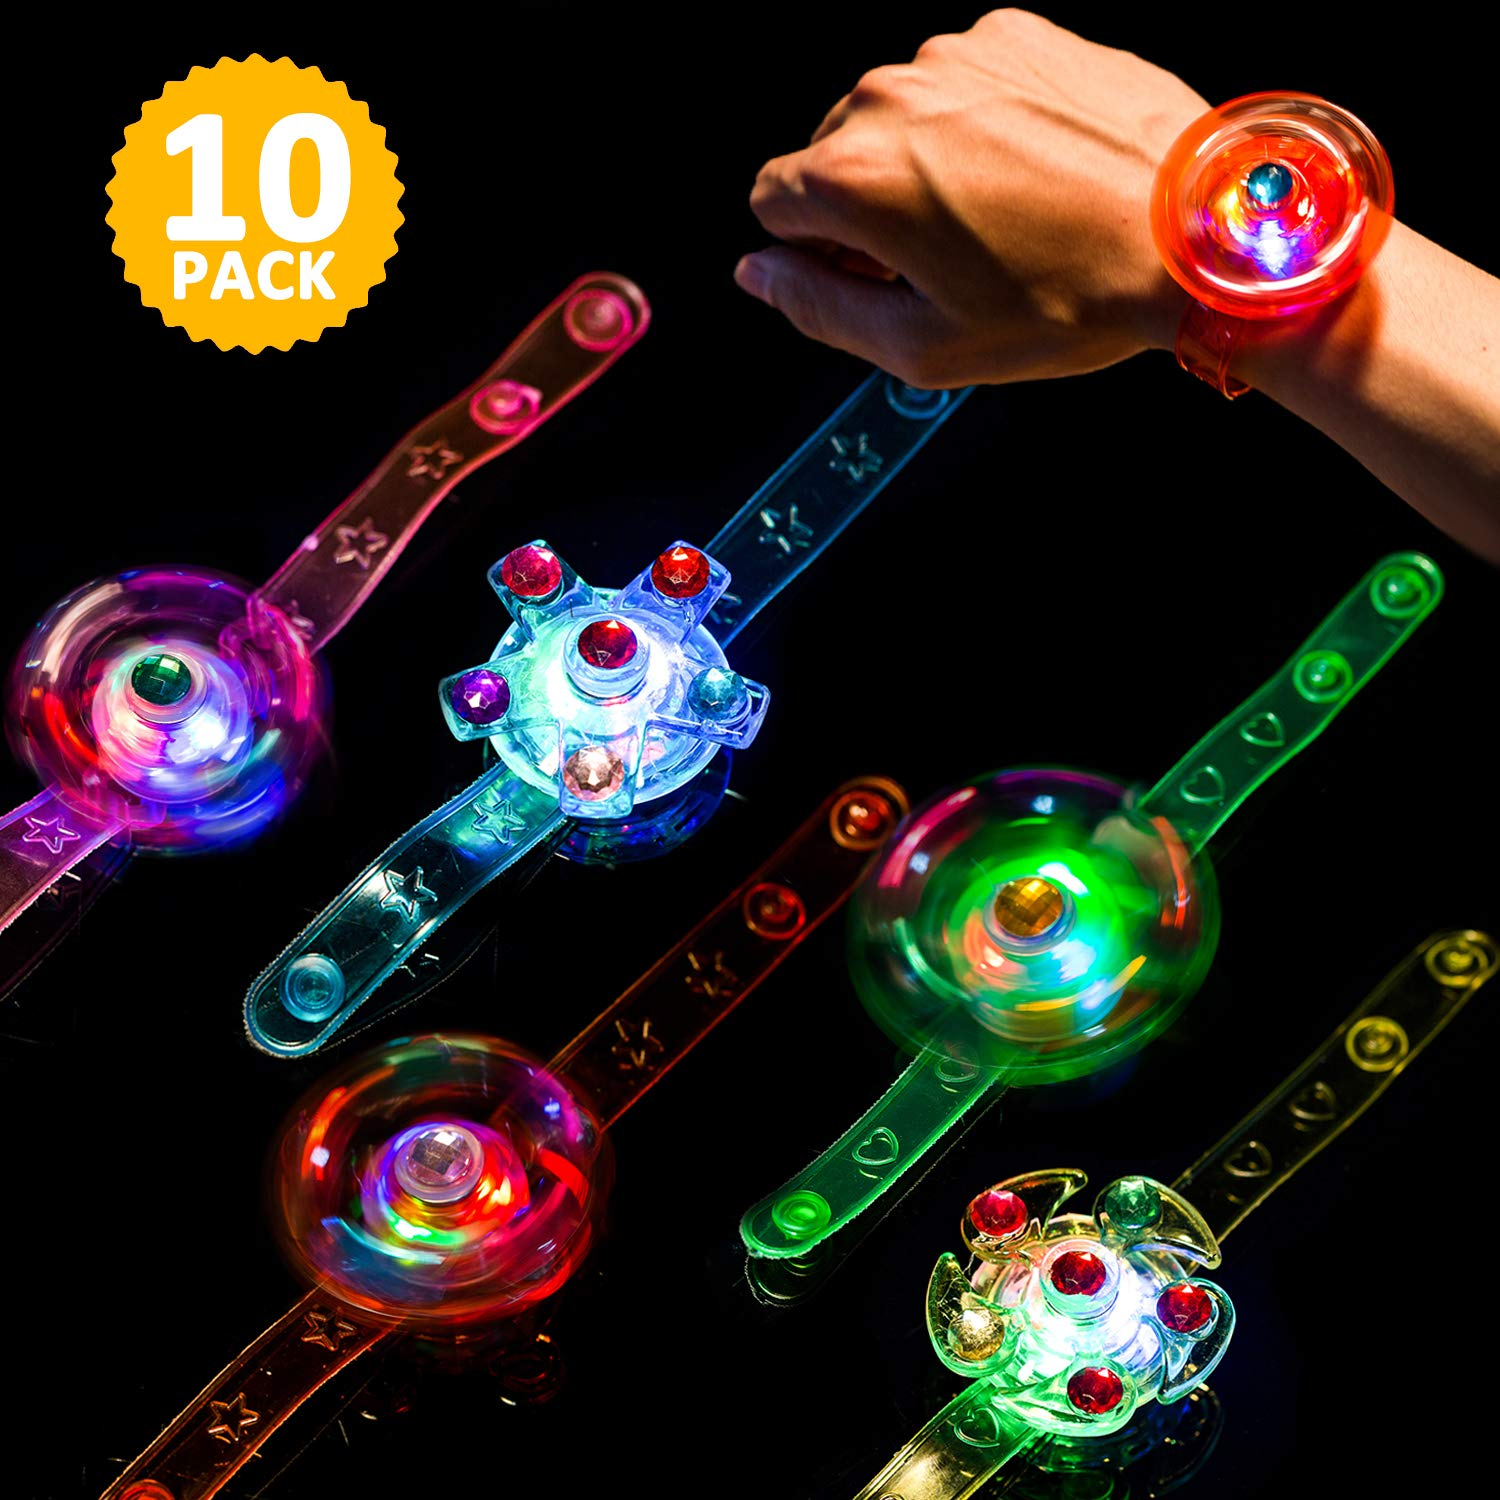 Light Up Bracelet LED Party Favors 10 Pack Toys for Kids Girls / Boys Prizes Back to School Gifts Toys for Classroom Halloween Thanksgiving Christmas Birthday Celebration New Year Eve Party Neon Supplies by LionMoc